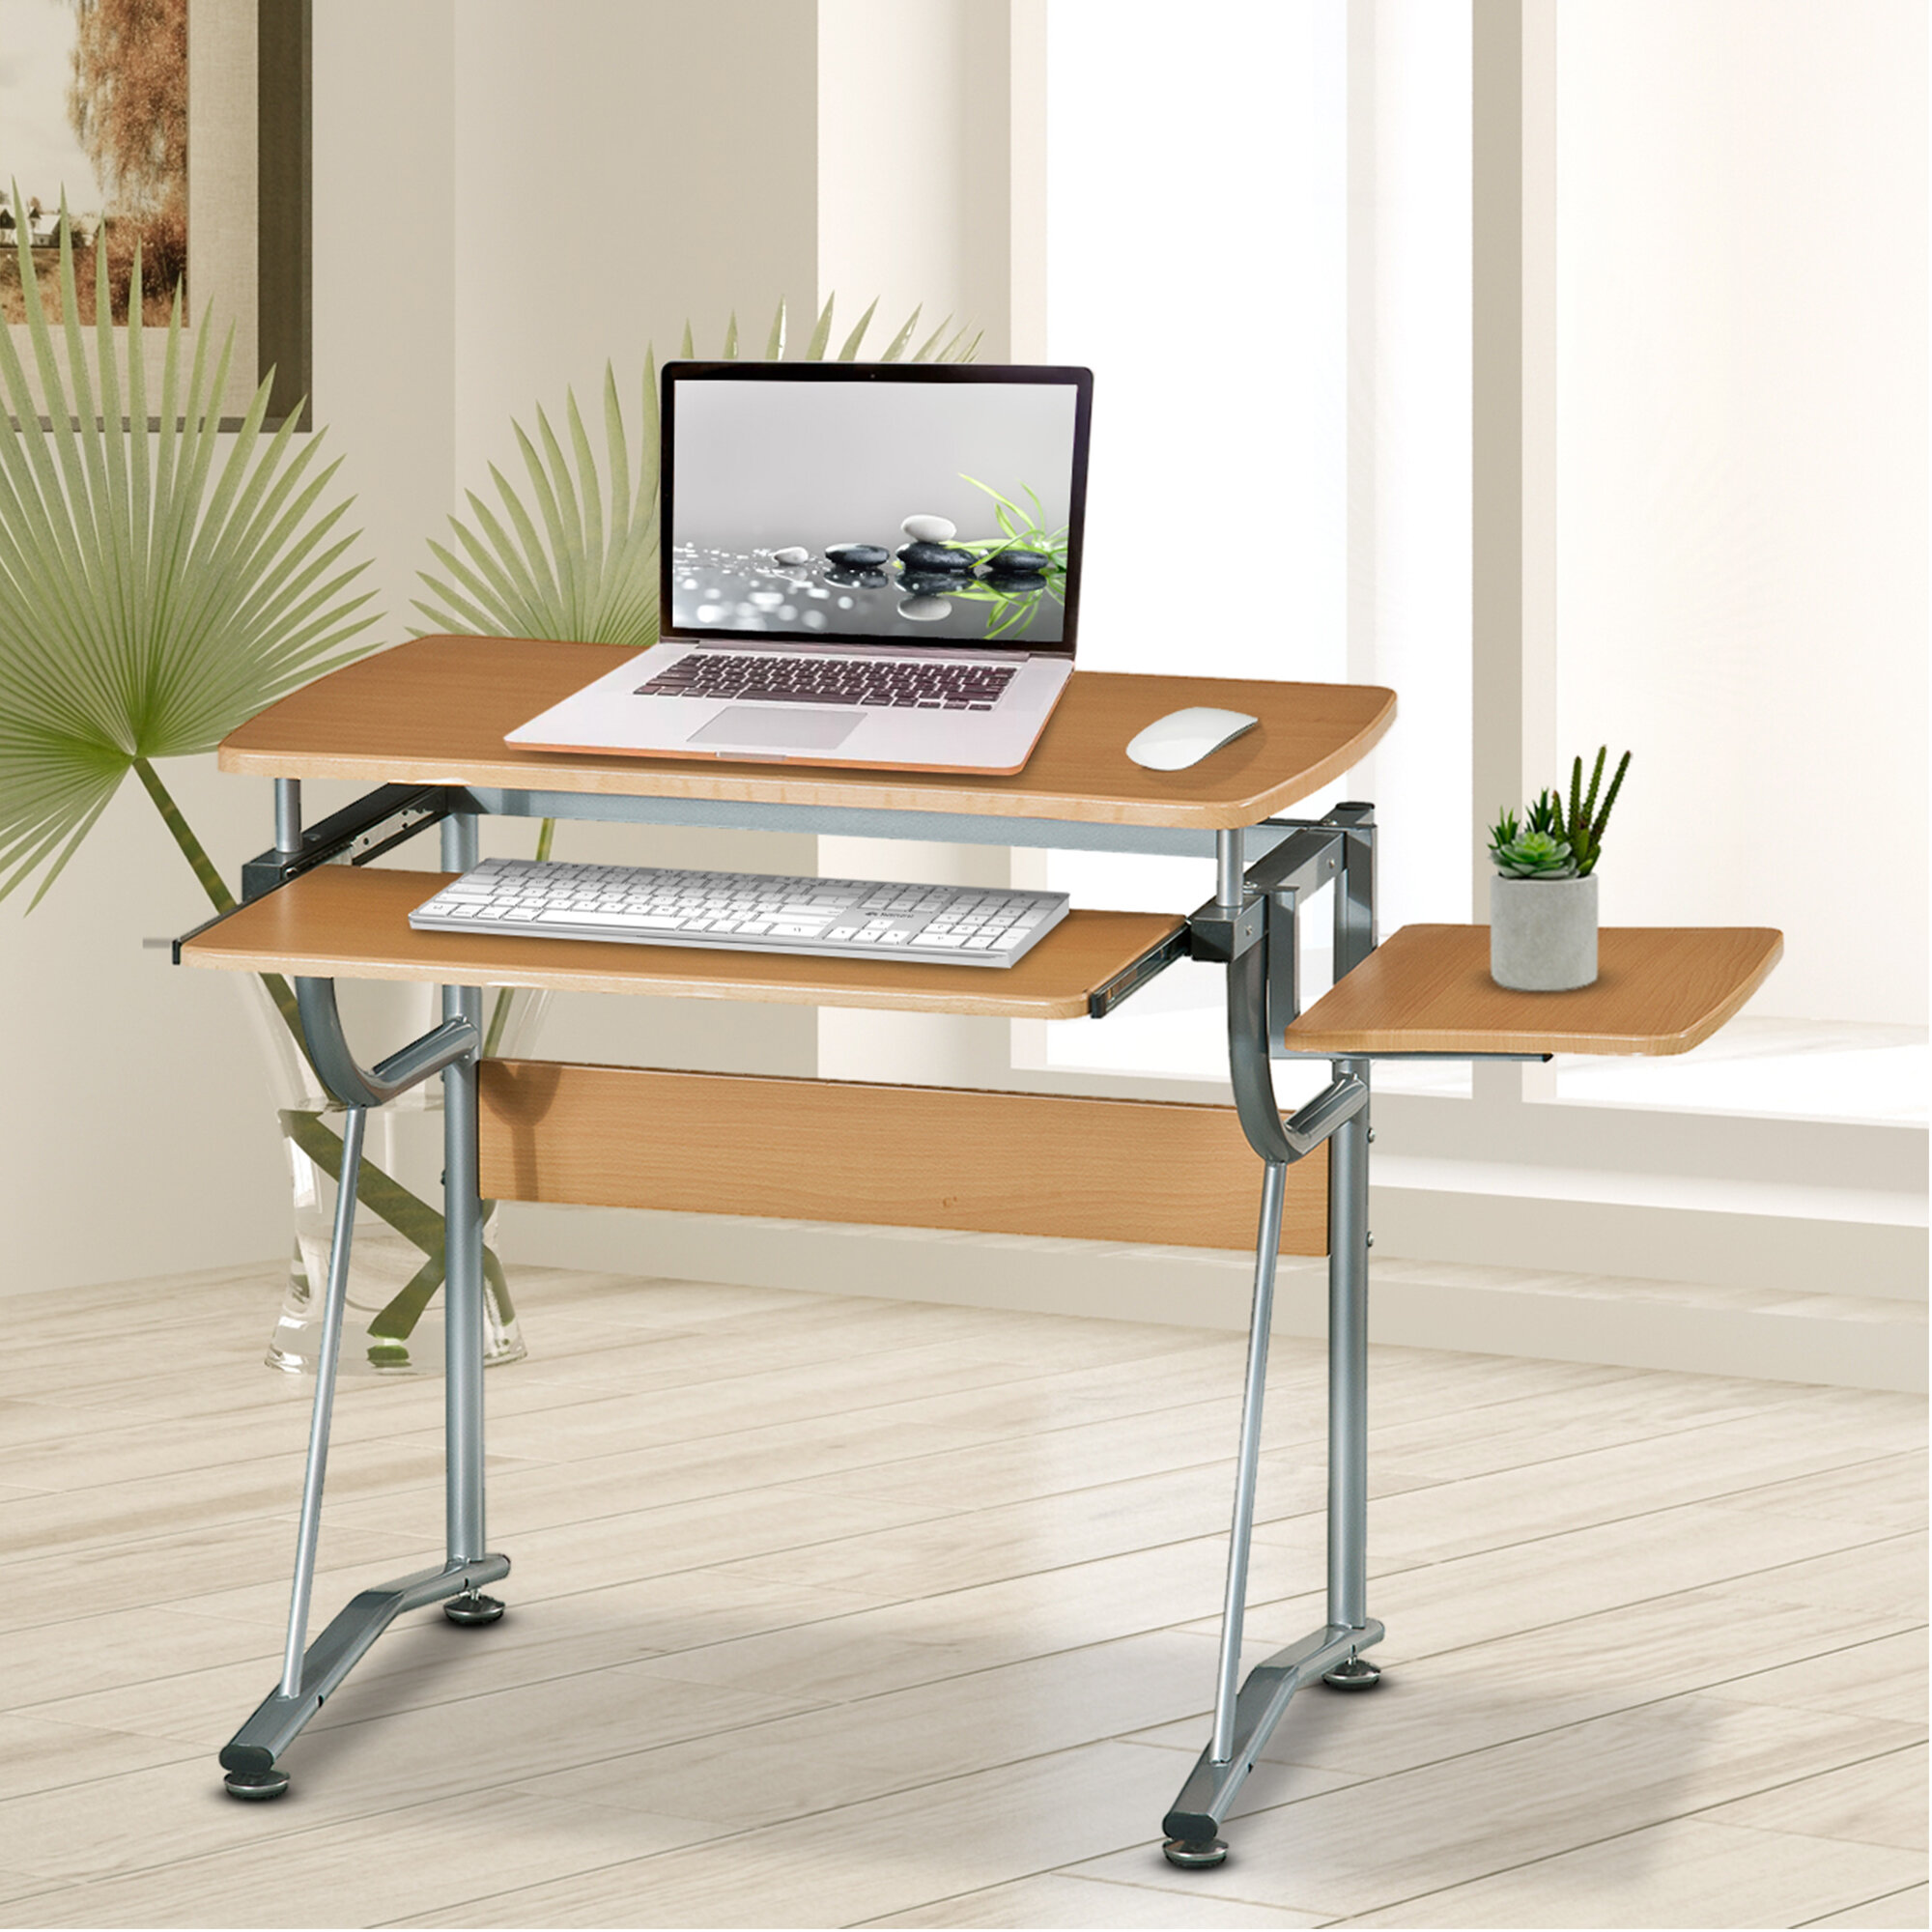 Mcglothin Compact Desk